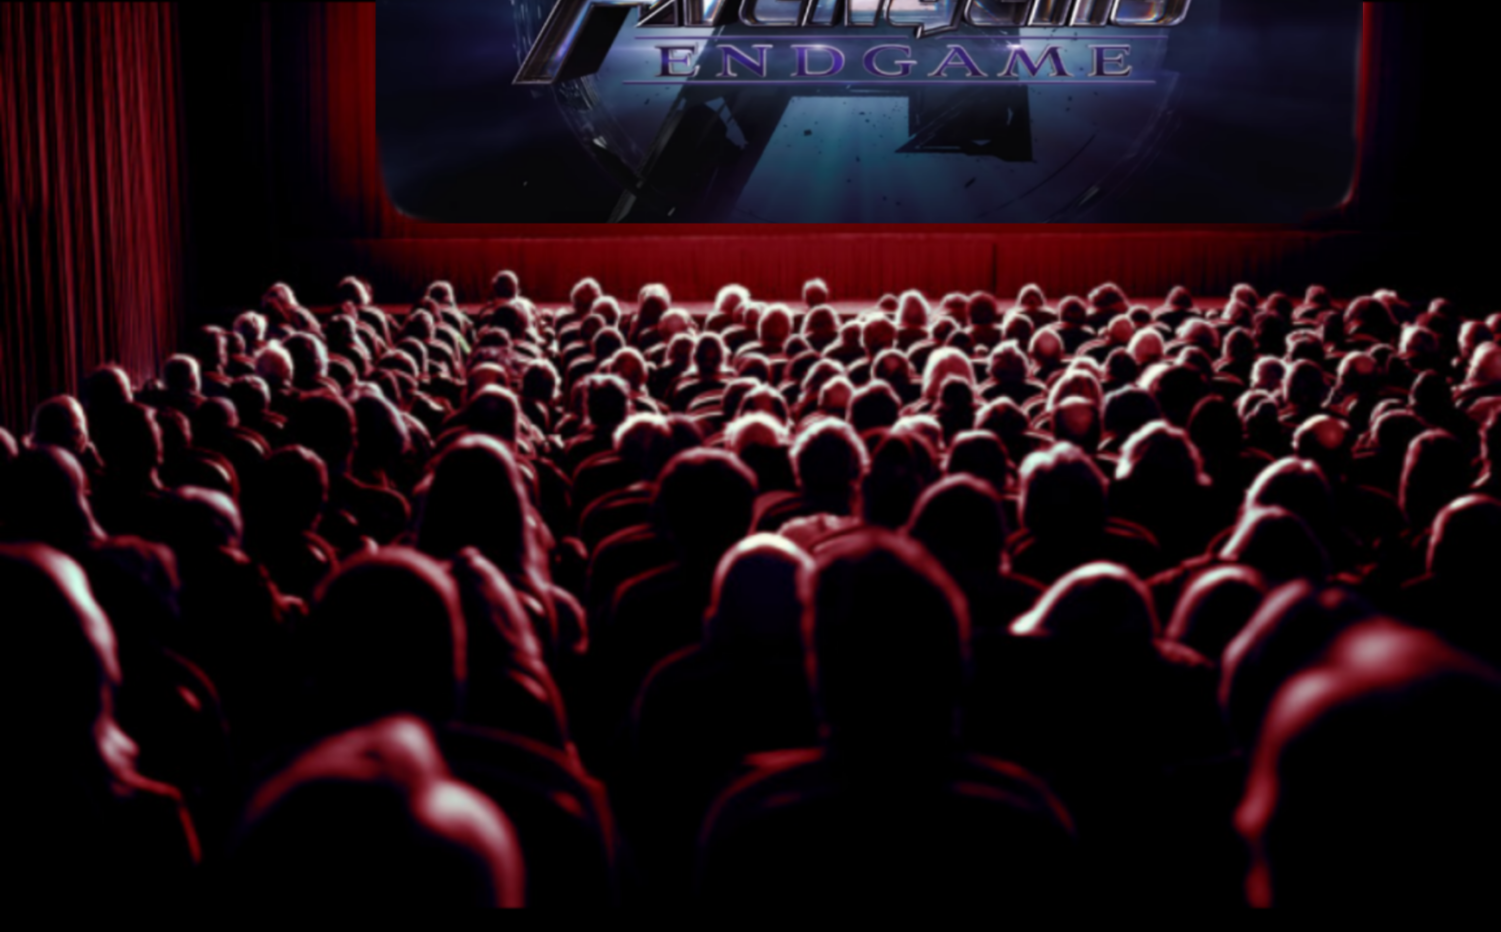 With the popular movie being released, theaters start to become packed.